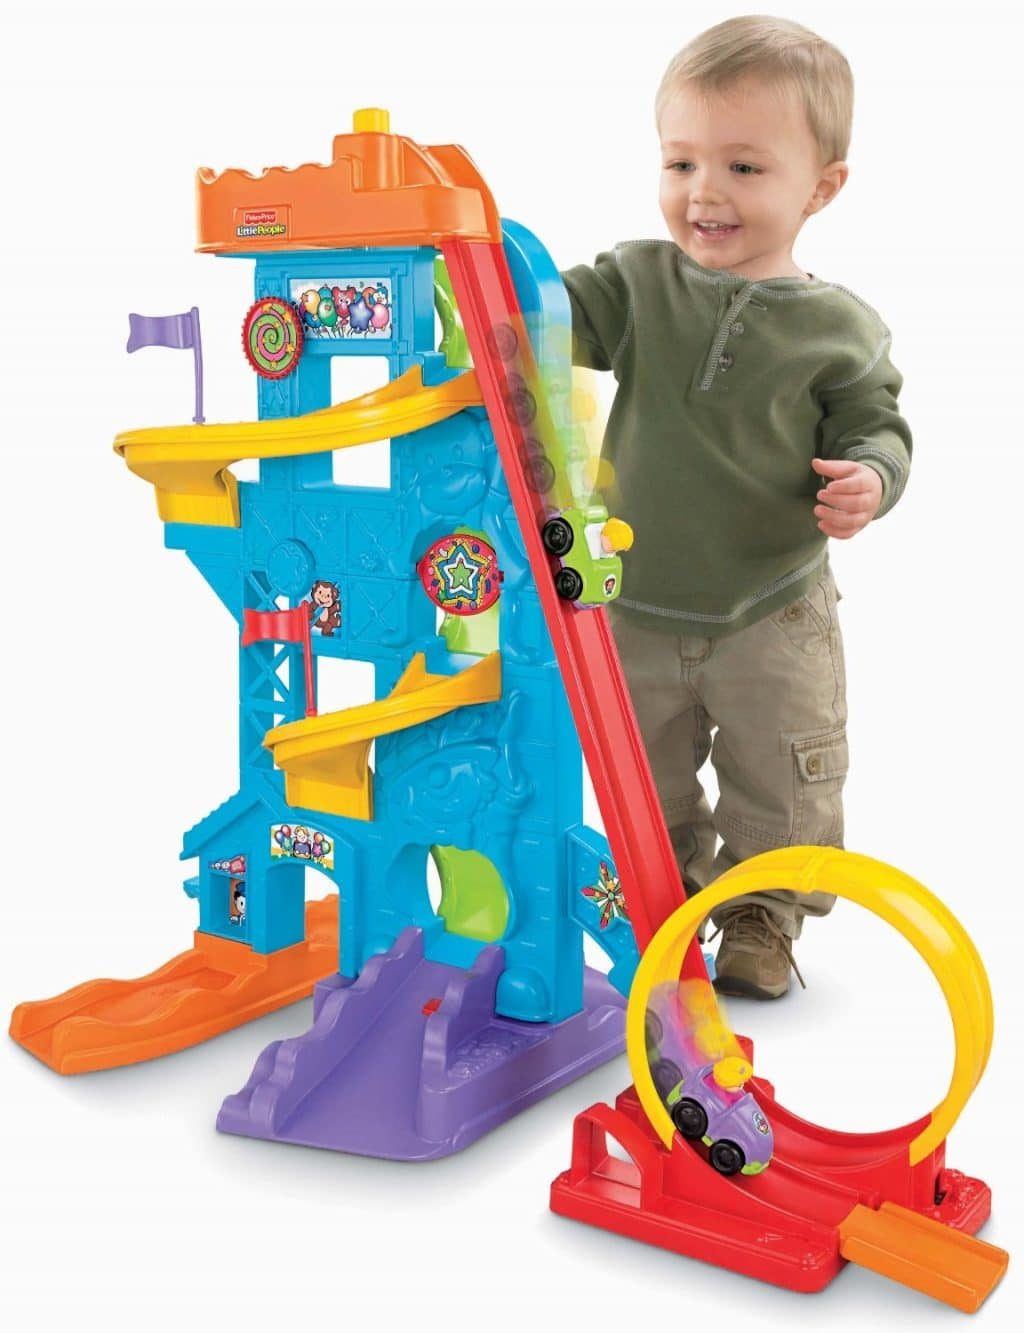 Little People Loops 'n Swoops Amusement Park Only $35! (Reg. $45!)